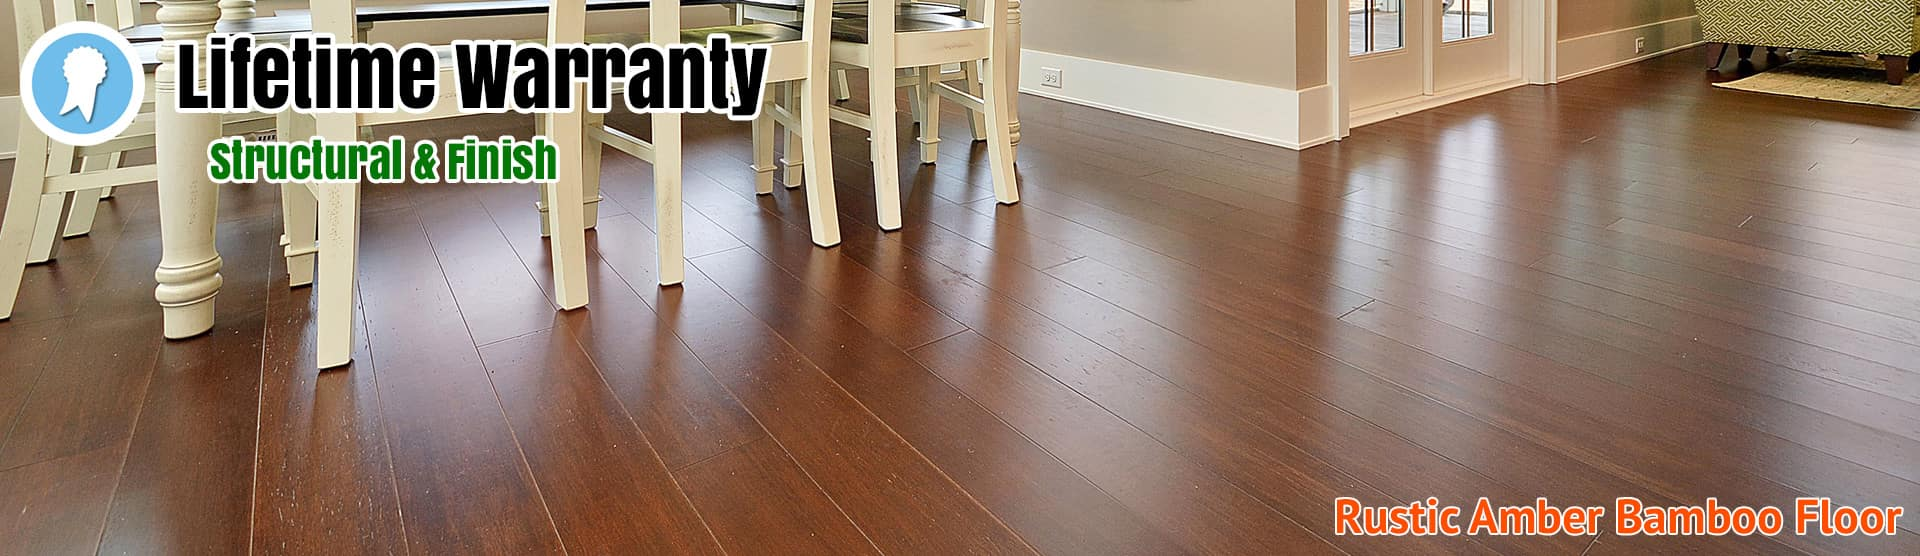 Bamboo Flooring Rustic Amber Wire Brushed